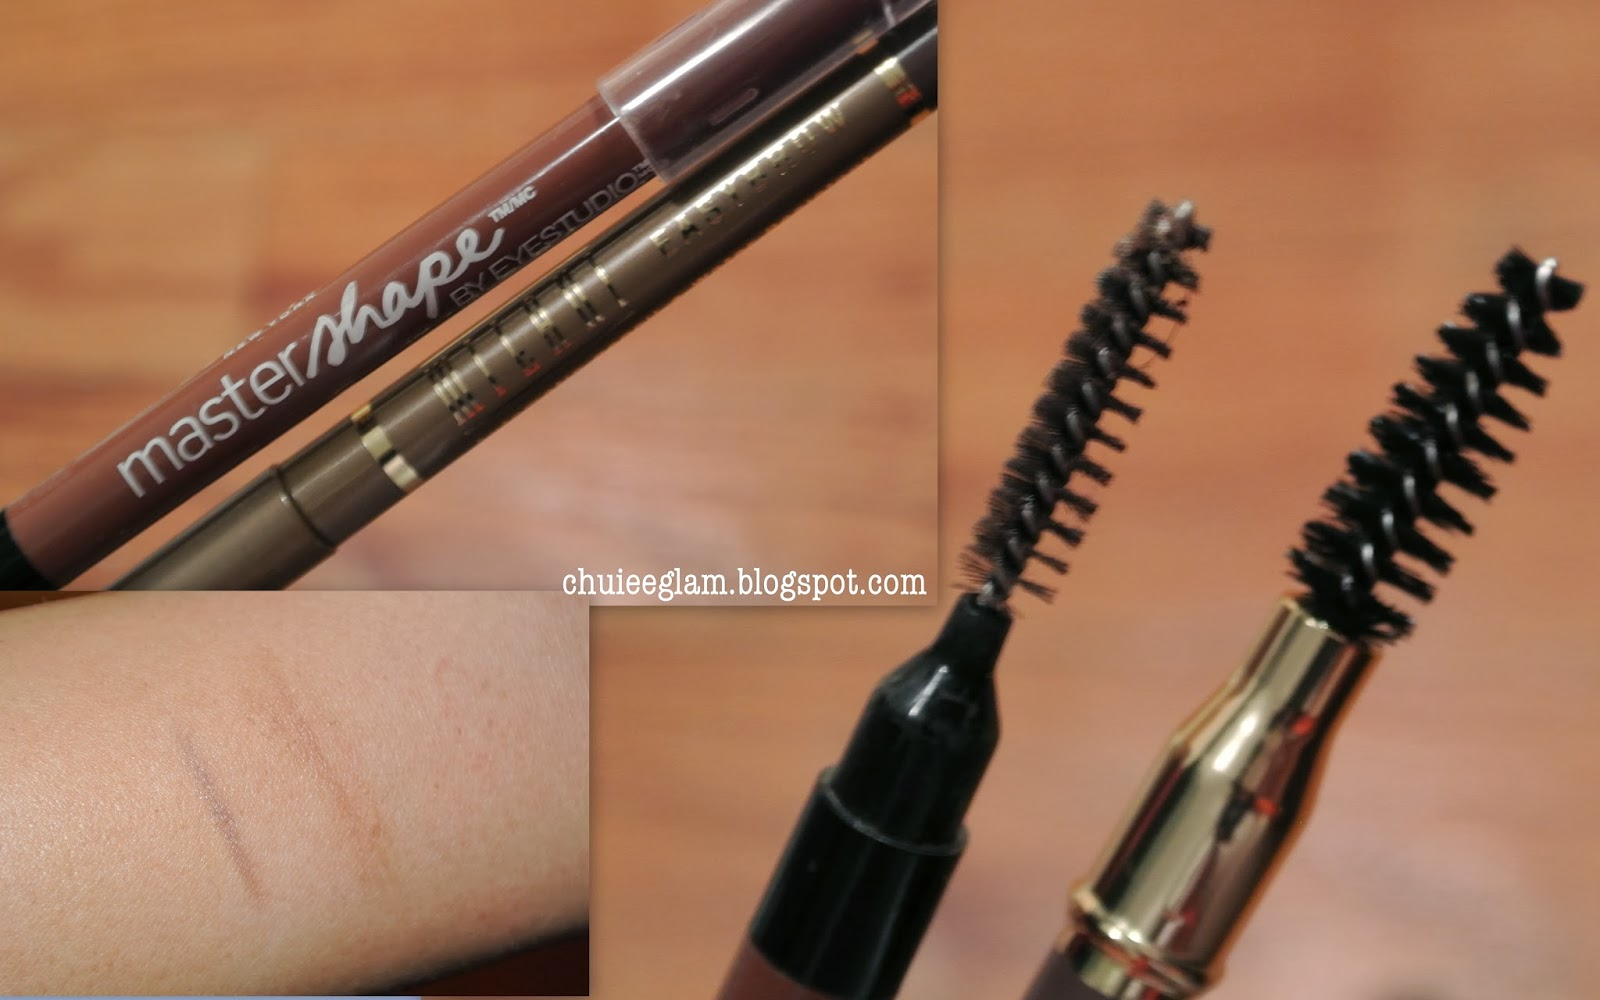 Poppin Brows Milani Vs Maybelline Eyebrow Pencil Chuiee Glam